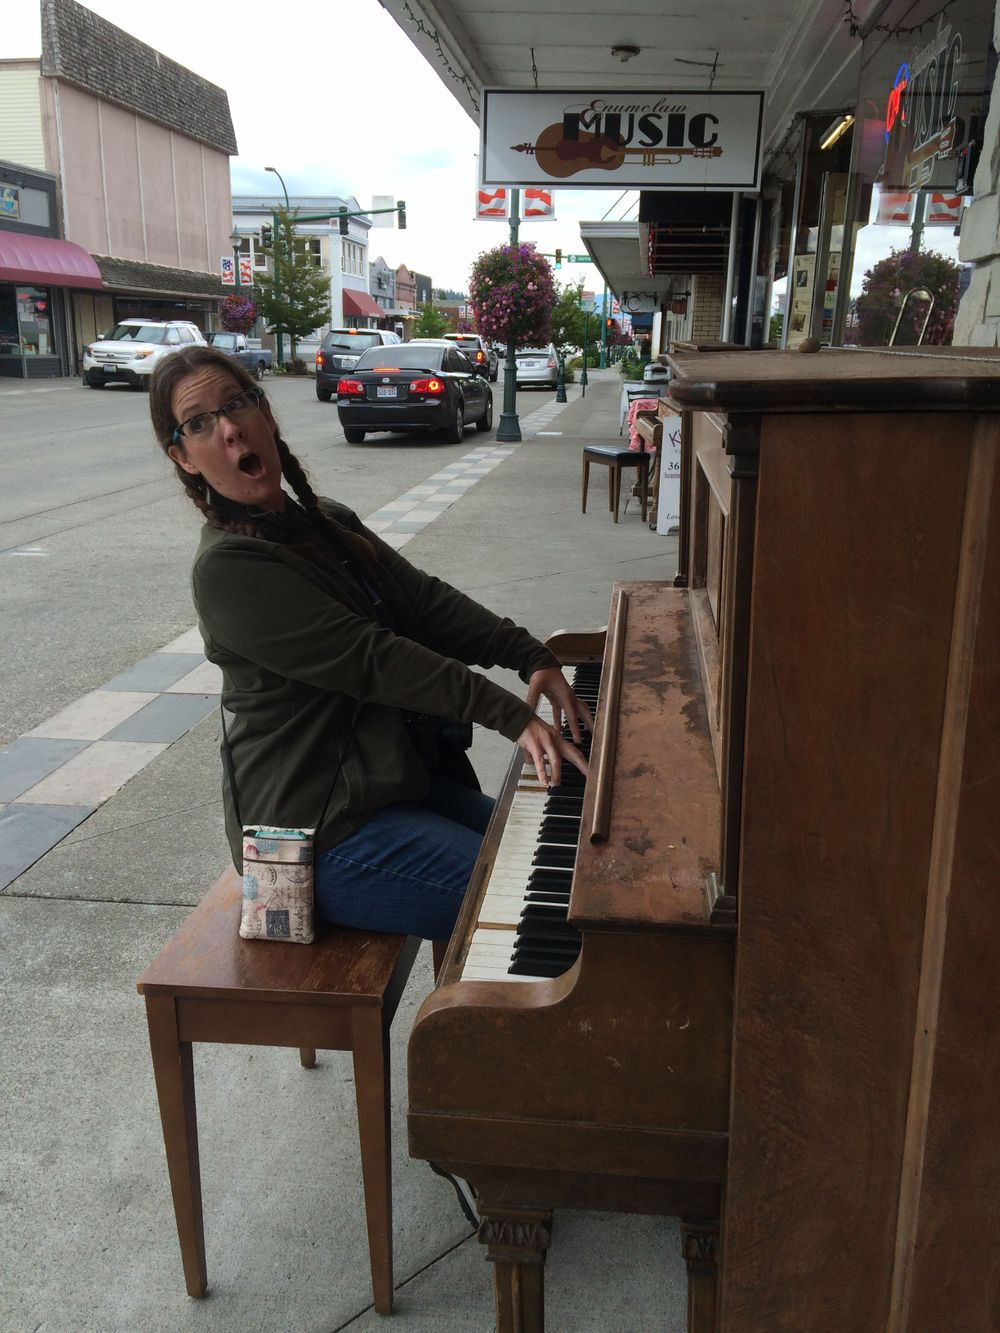 Tapestry Photographs, About Joy Neel, piano, Seattle, street photography